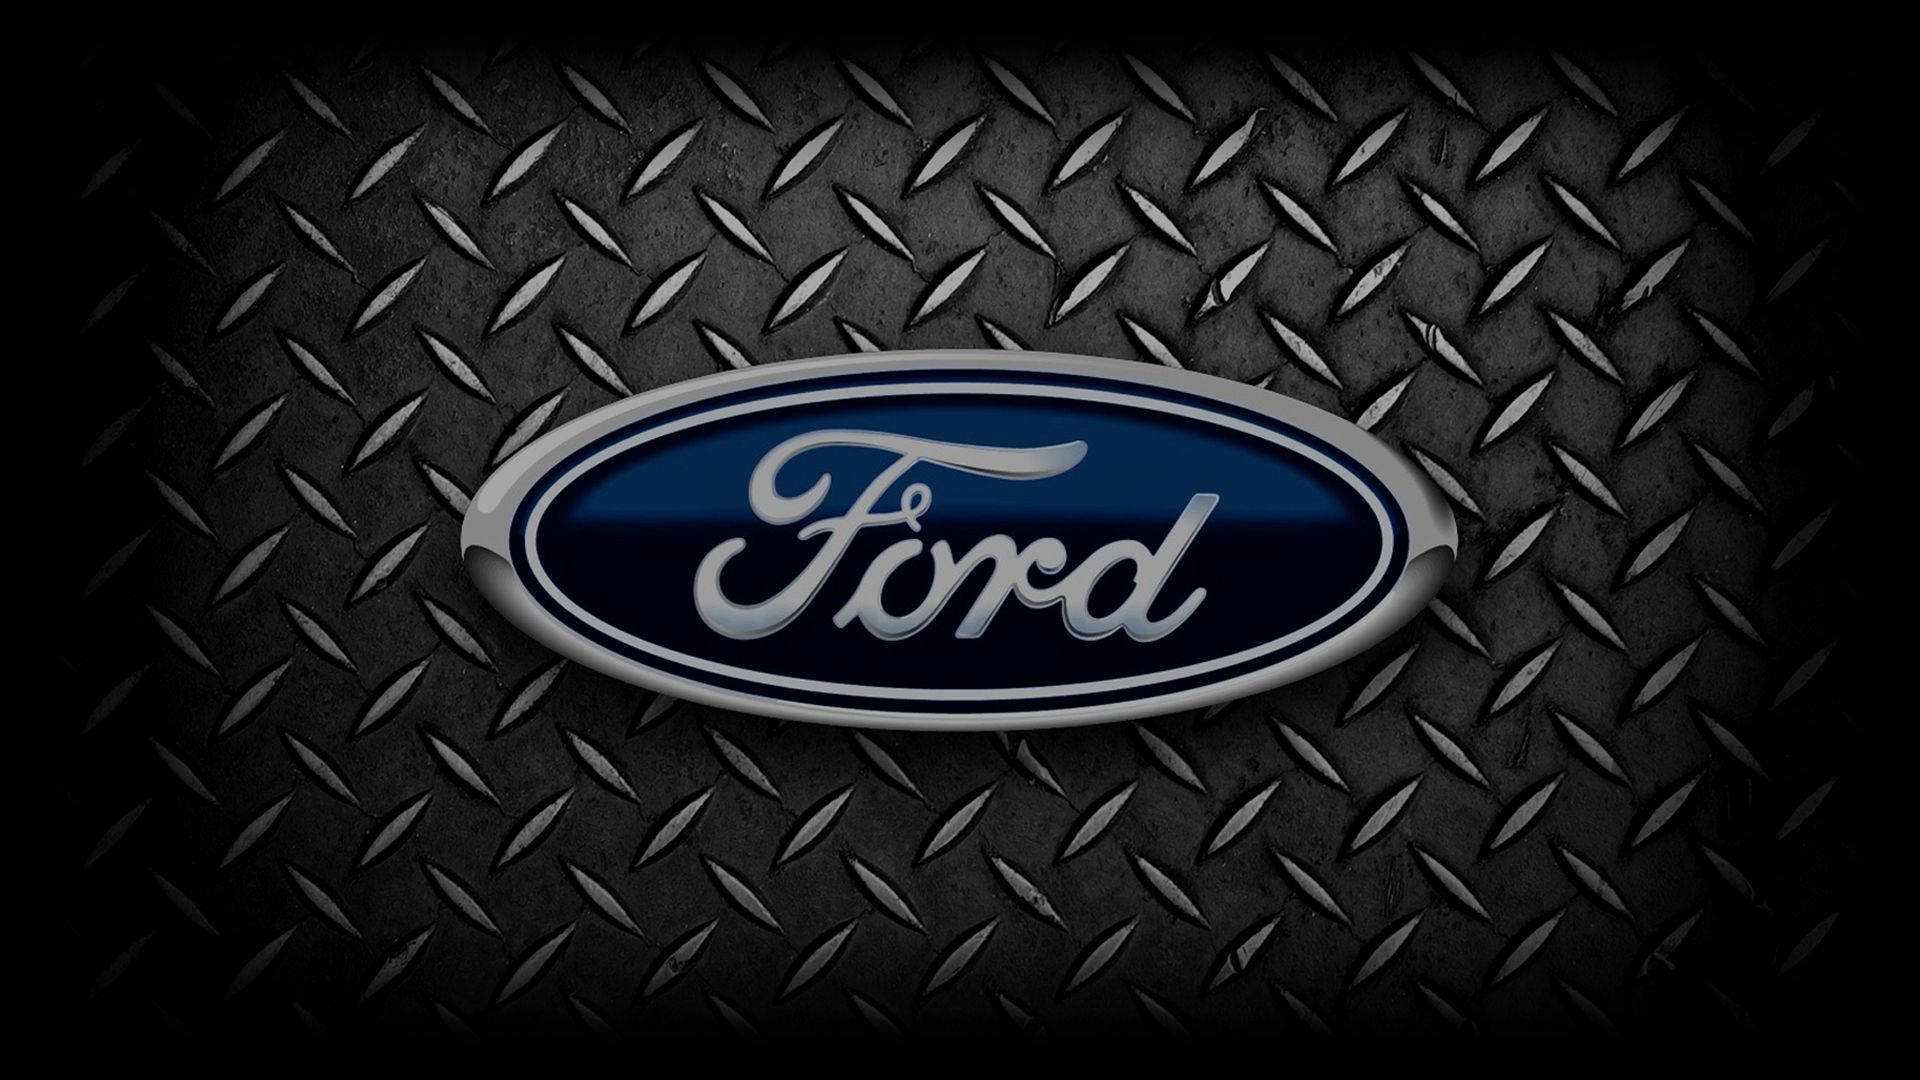 Ford Logo Wallpaper 1920 X 1080 Ford Logo Ford Emblem Car Brands Logos